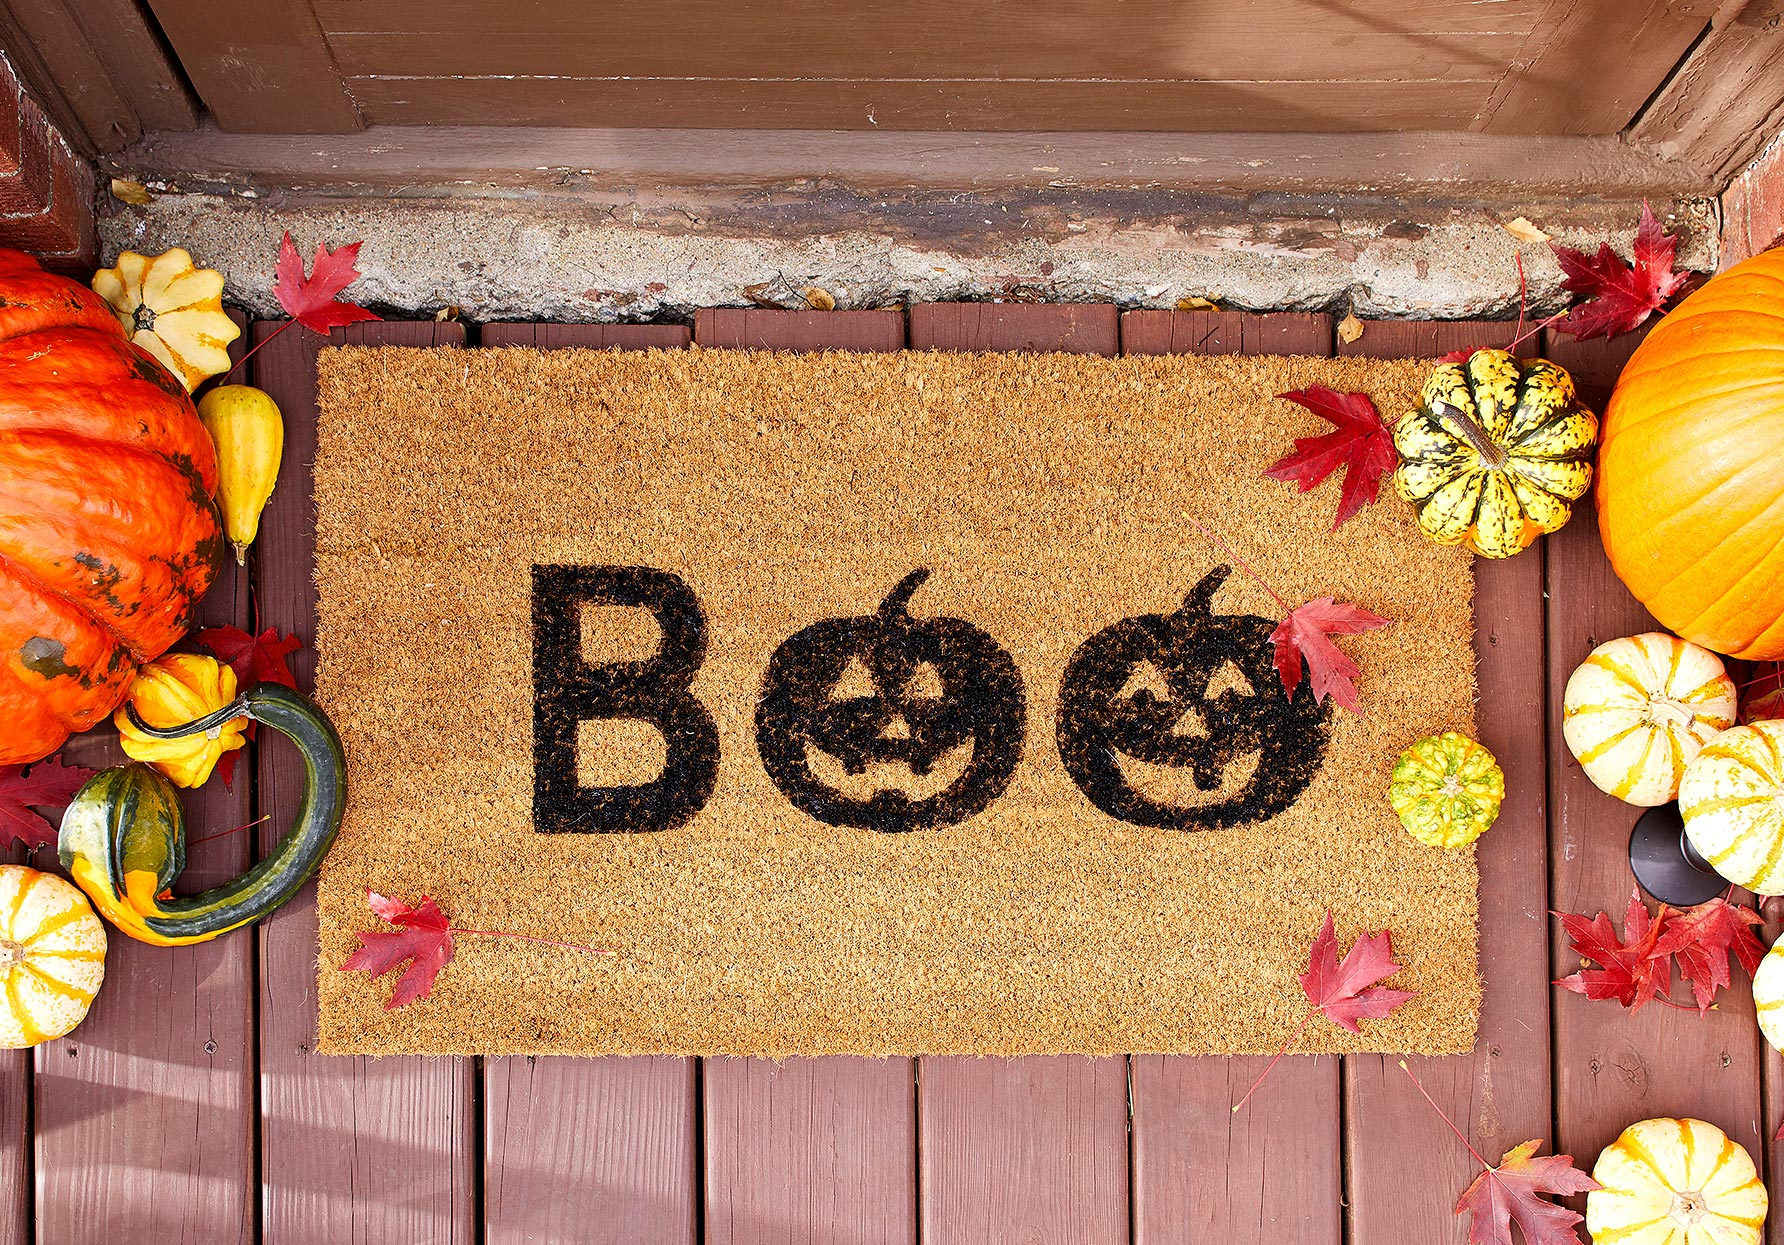 diy doormat with boo stenciled letters